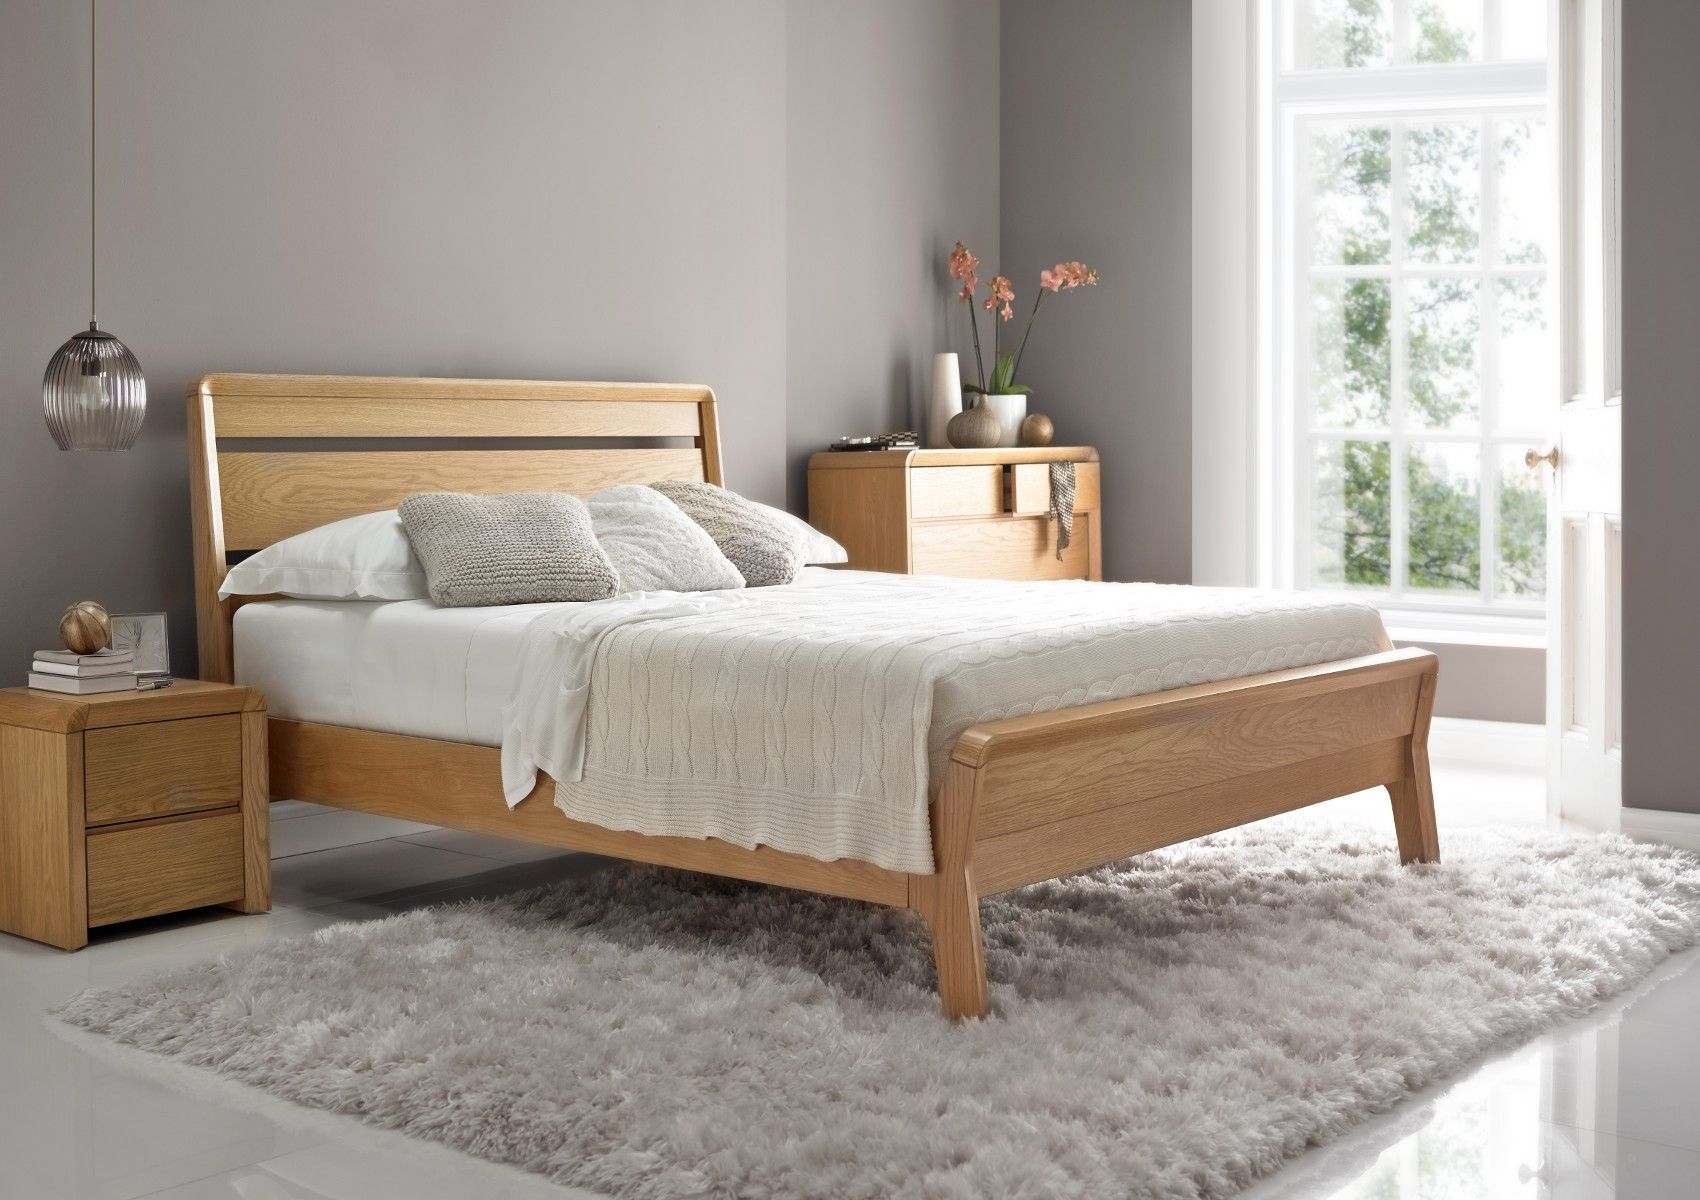 Pleasing Brittany Oak Finish Bed Frame Light Wood Wooden Beds Andrewgaddart Wooden Chair Designs For Living Room Andrewgaddartcom